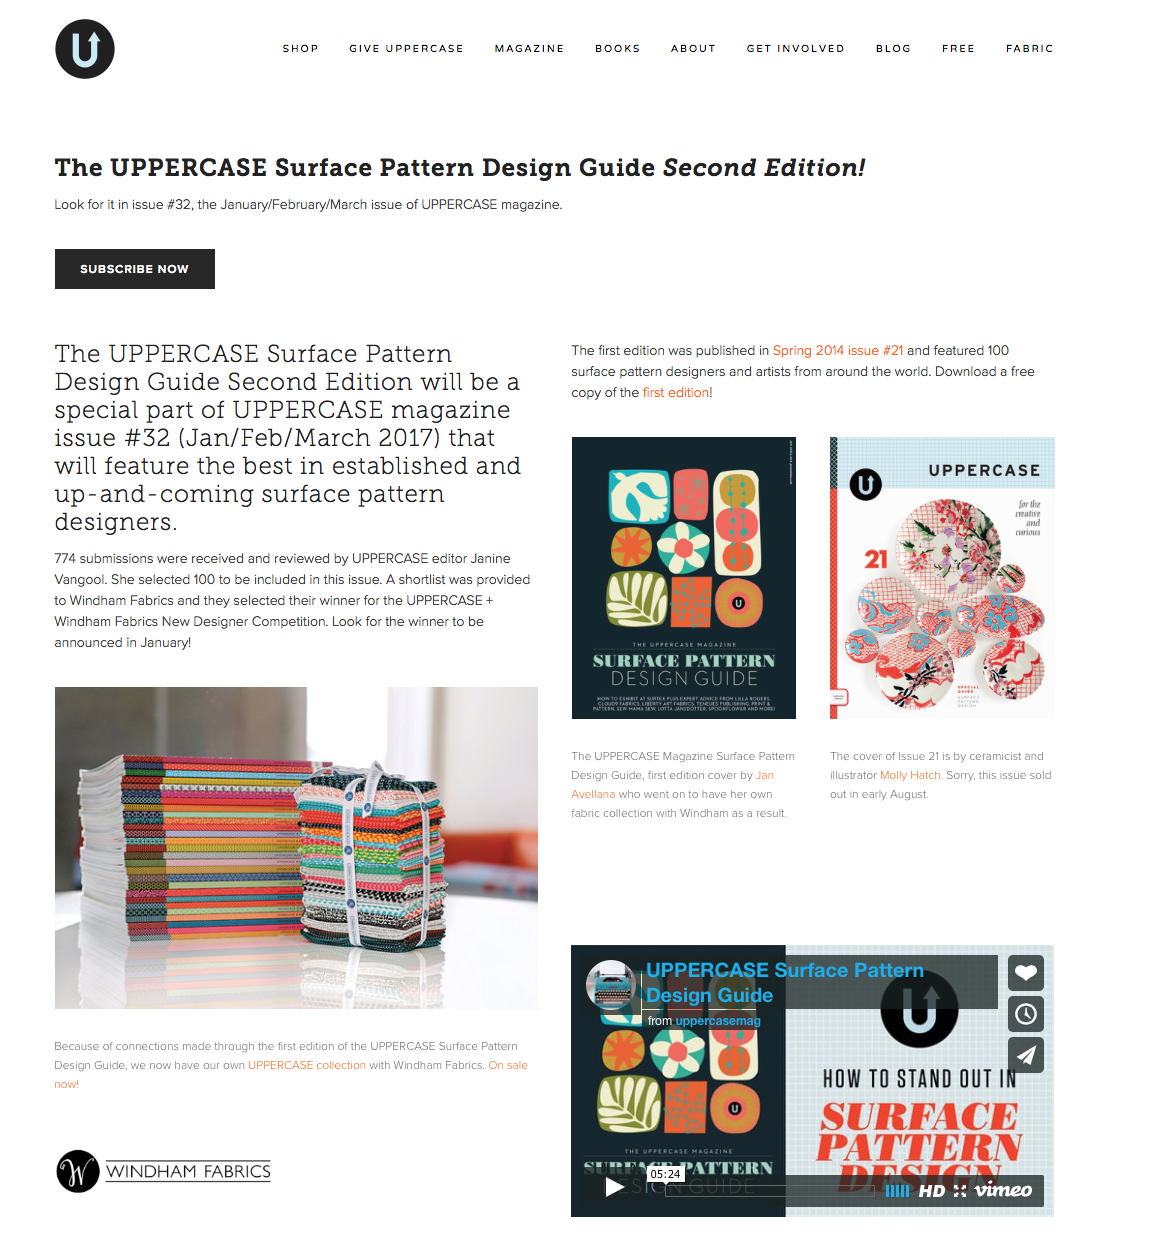 UPPERCASE Surface Pattern Design Guide.